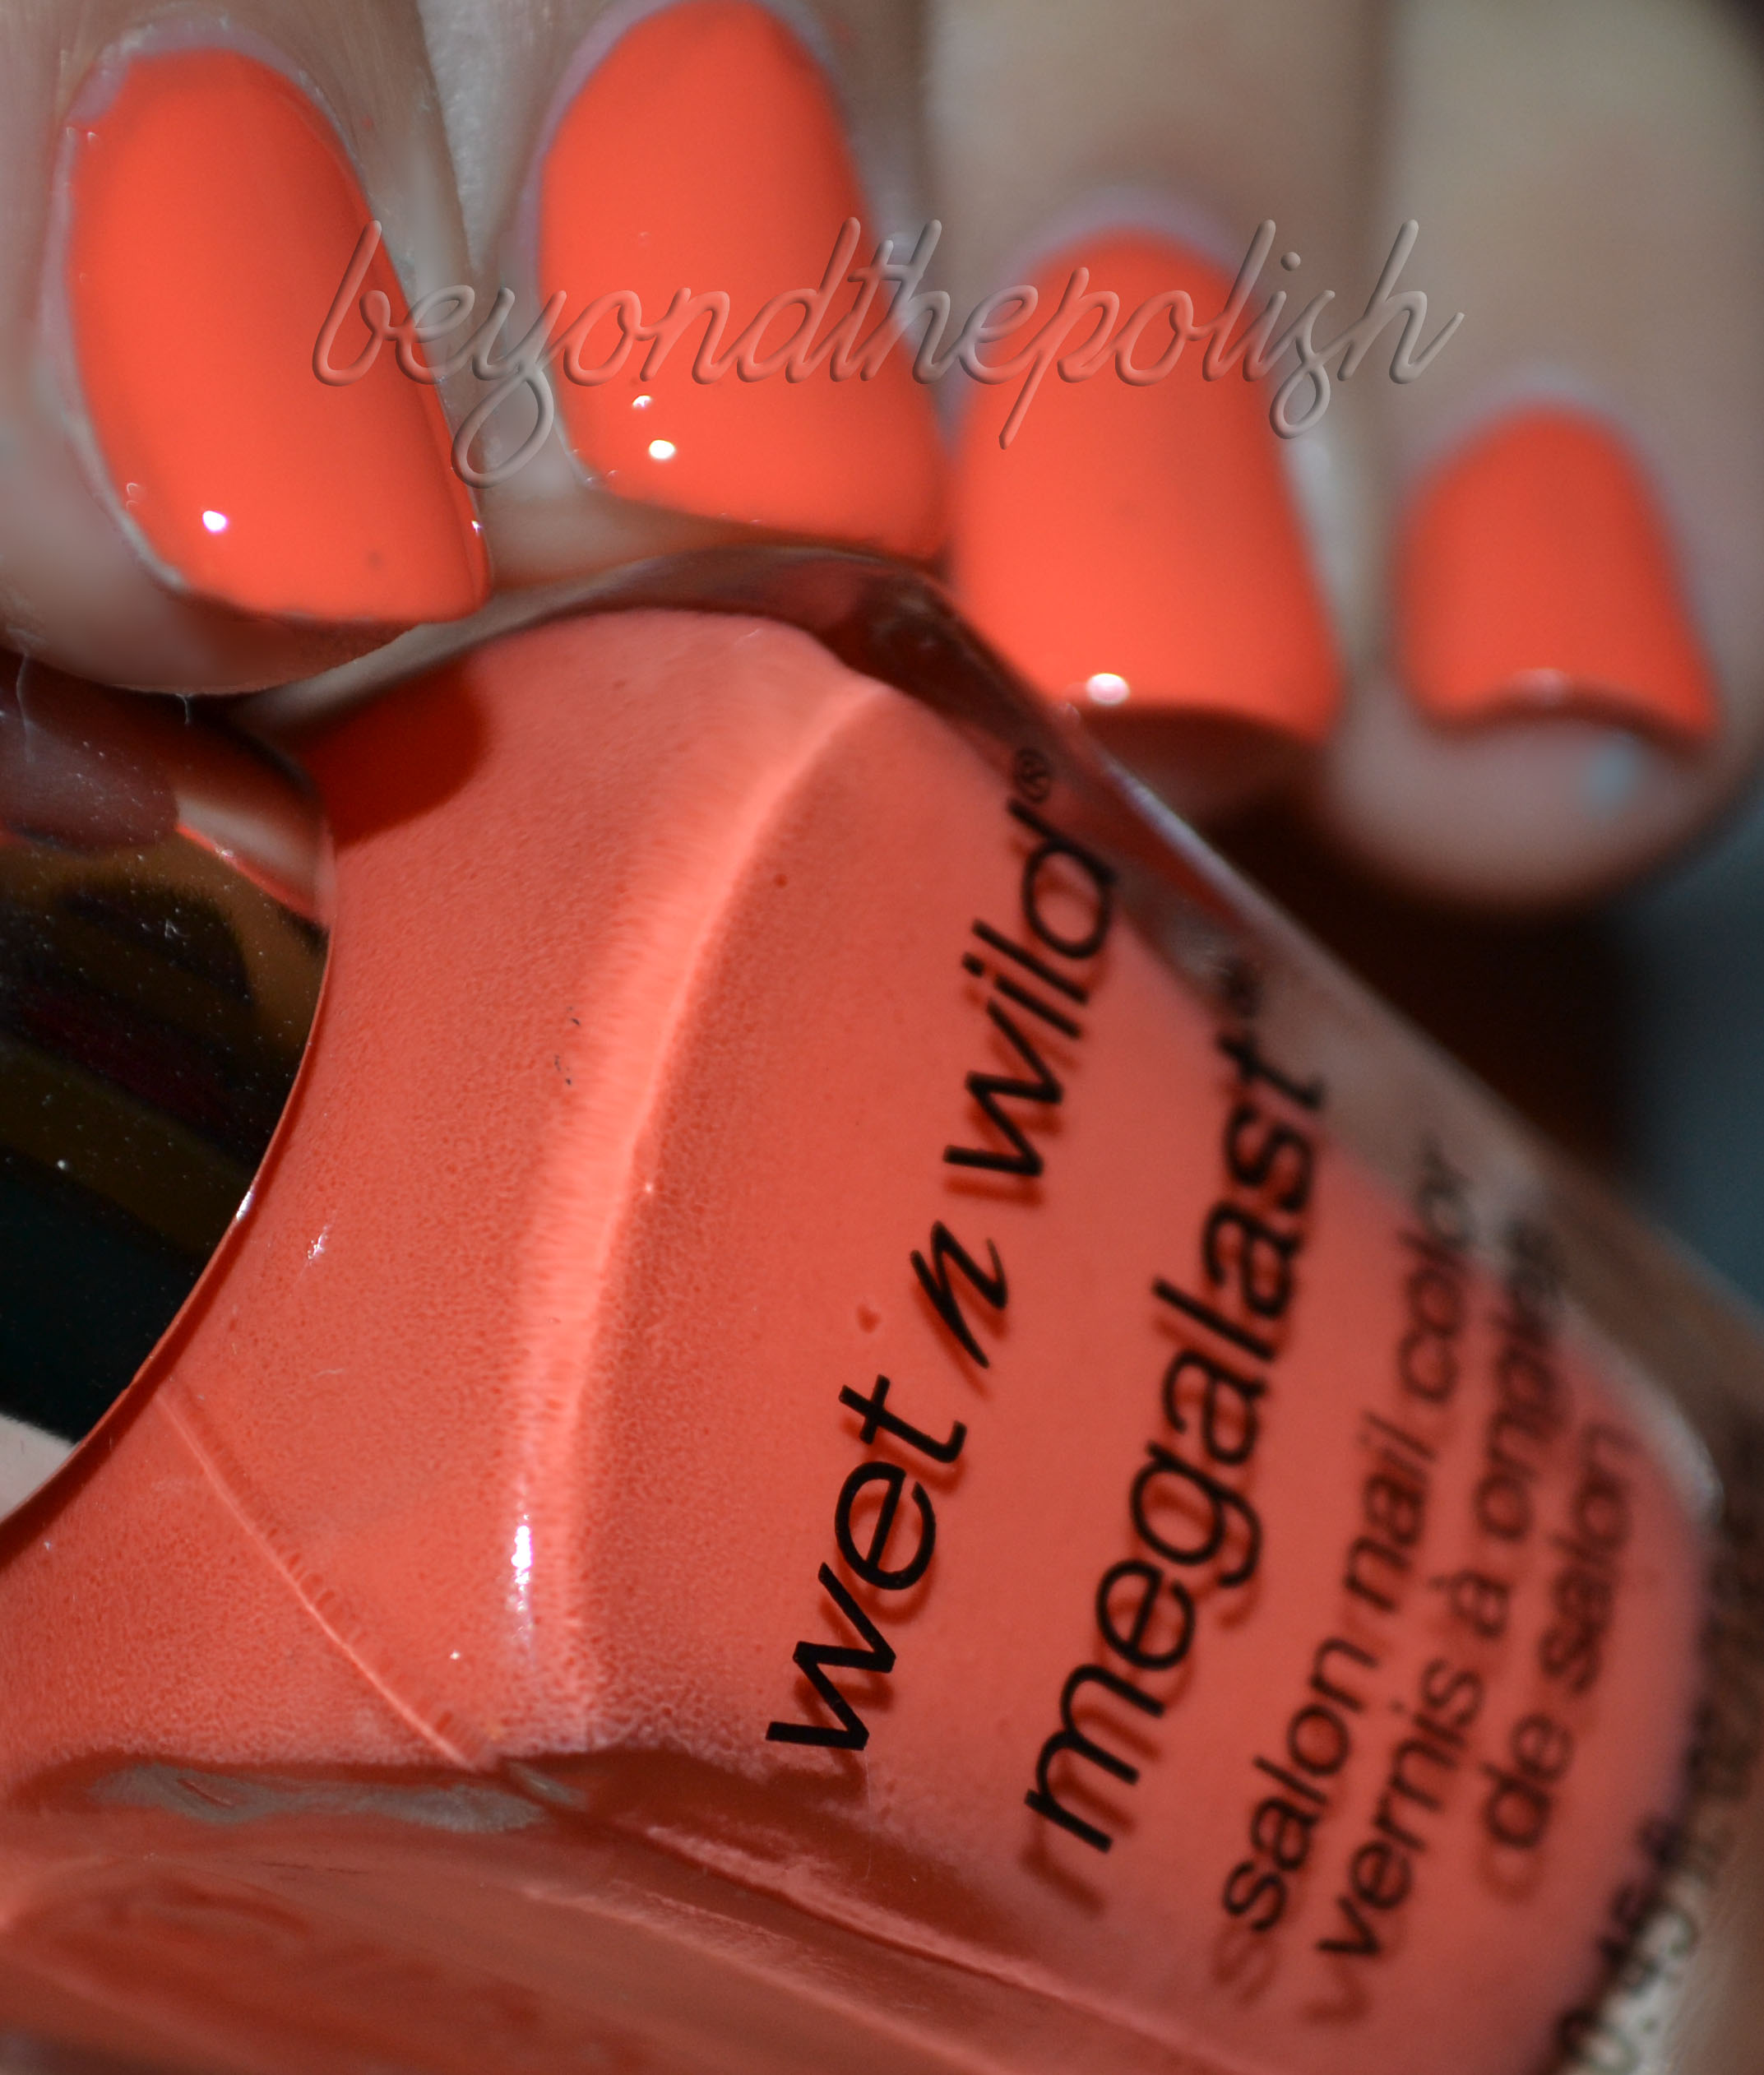 Wet N Wild Megalast New For 2012 Swatches And Review Beyond The Salon Nail Color Candylicious Image